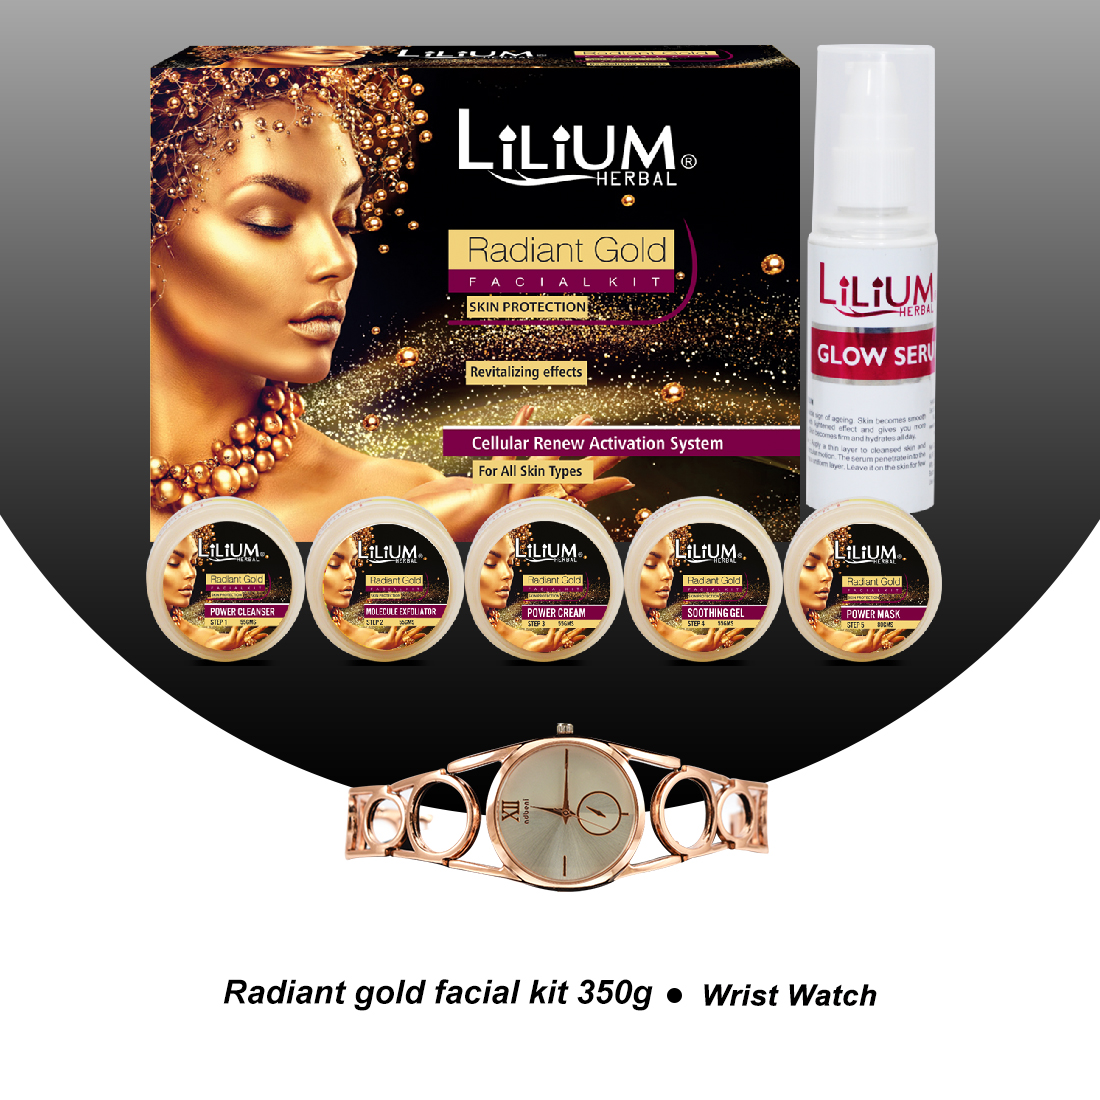 Lilium Radiant Gold Facial Kit350gm With 5in1 Face Massager & Wrist Watch Pack of 3